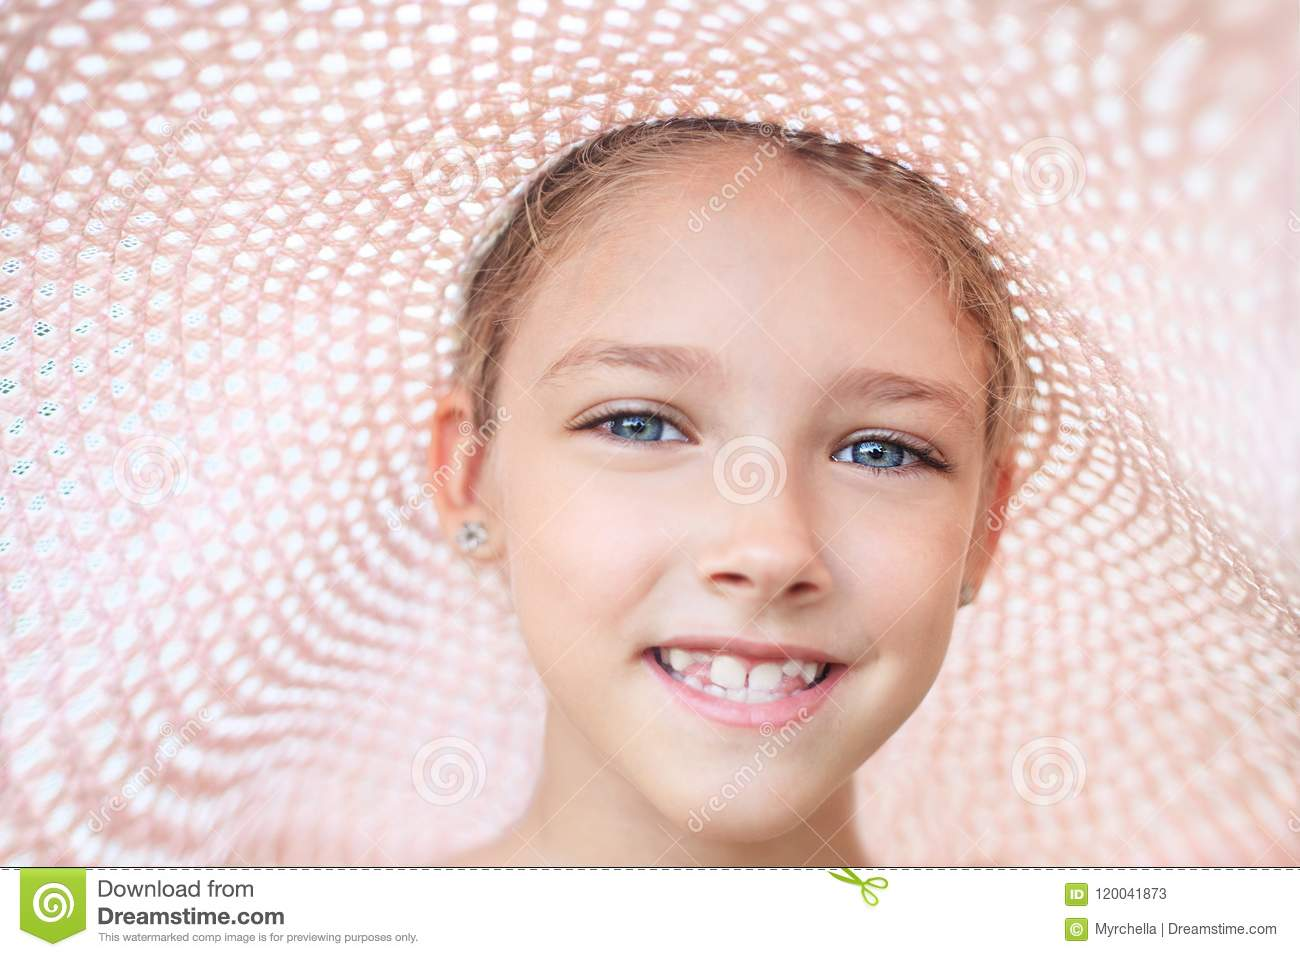 Download Summer Portrait Of A Beautiful Girl In A Pink Hat. Stock Image - Image of fashion, dress: 120041873